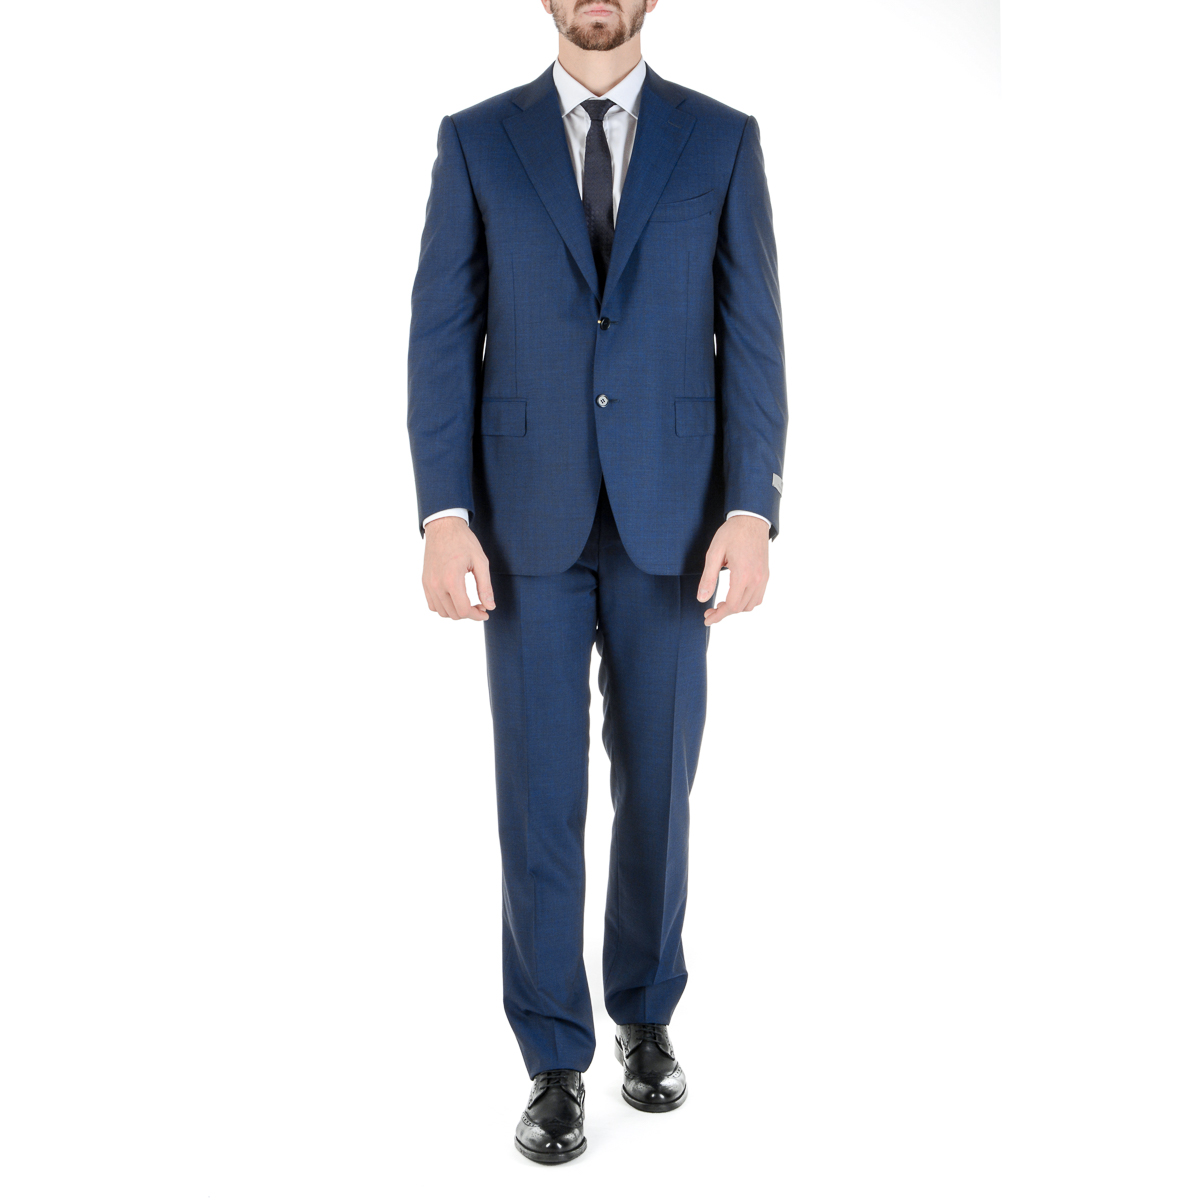 Primary image for Canali Mens Suit Long Sleeves Blue